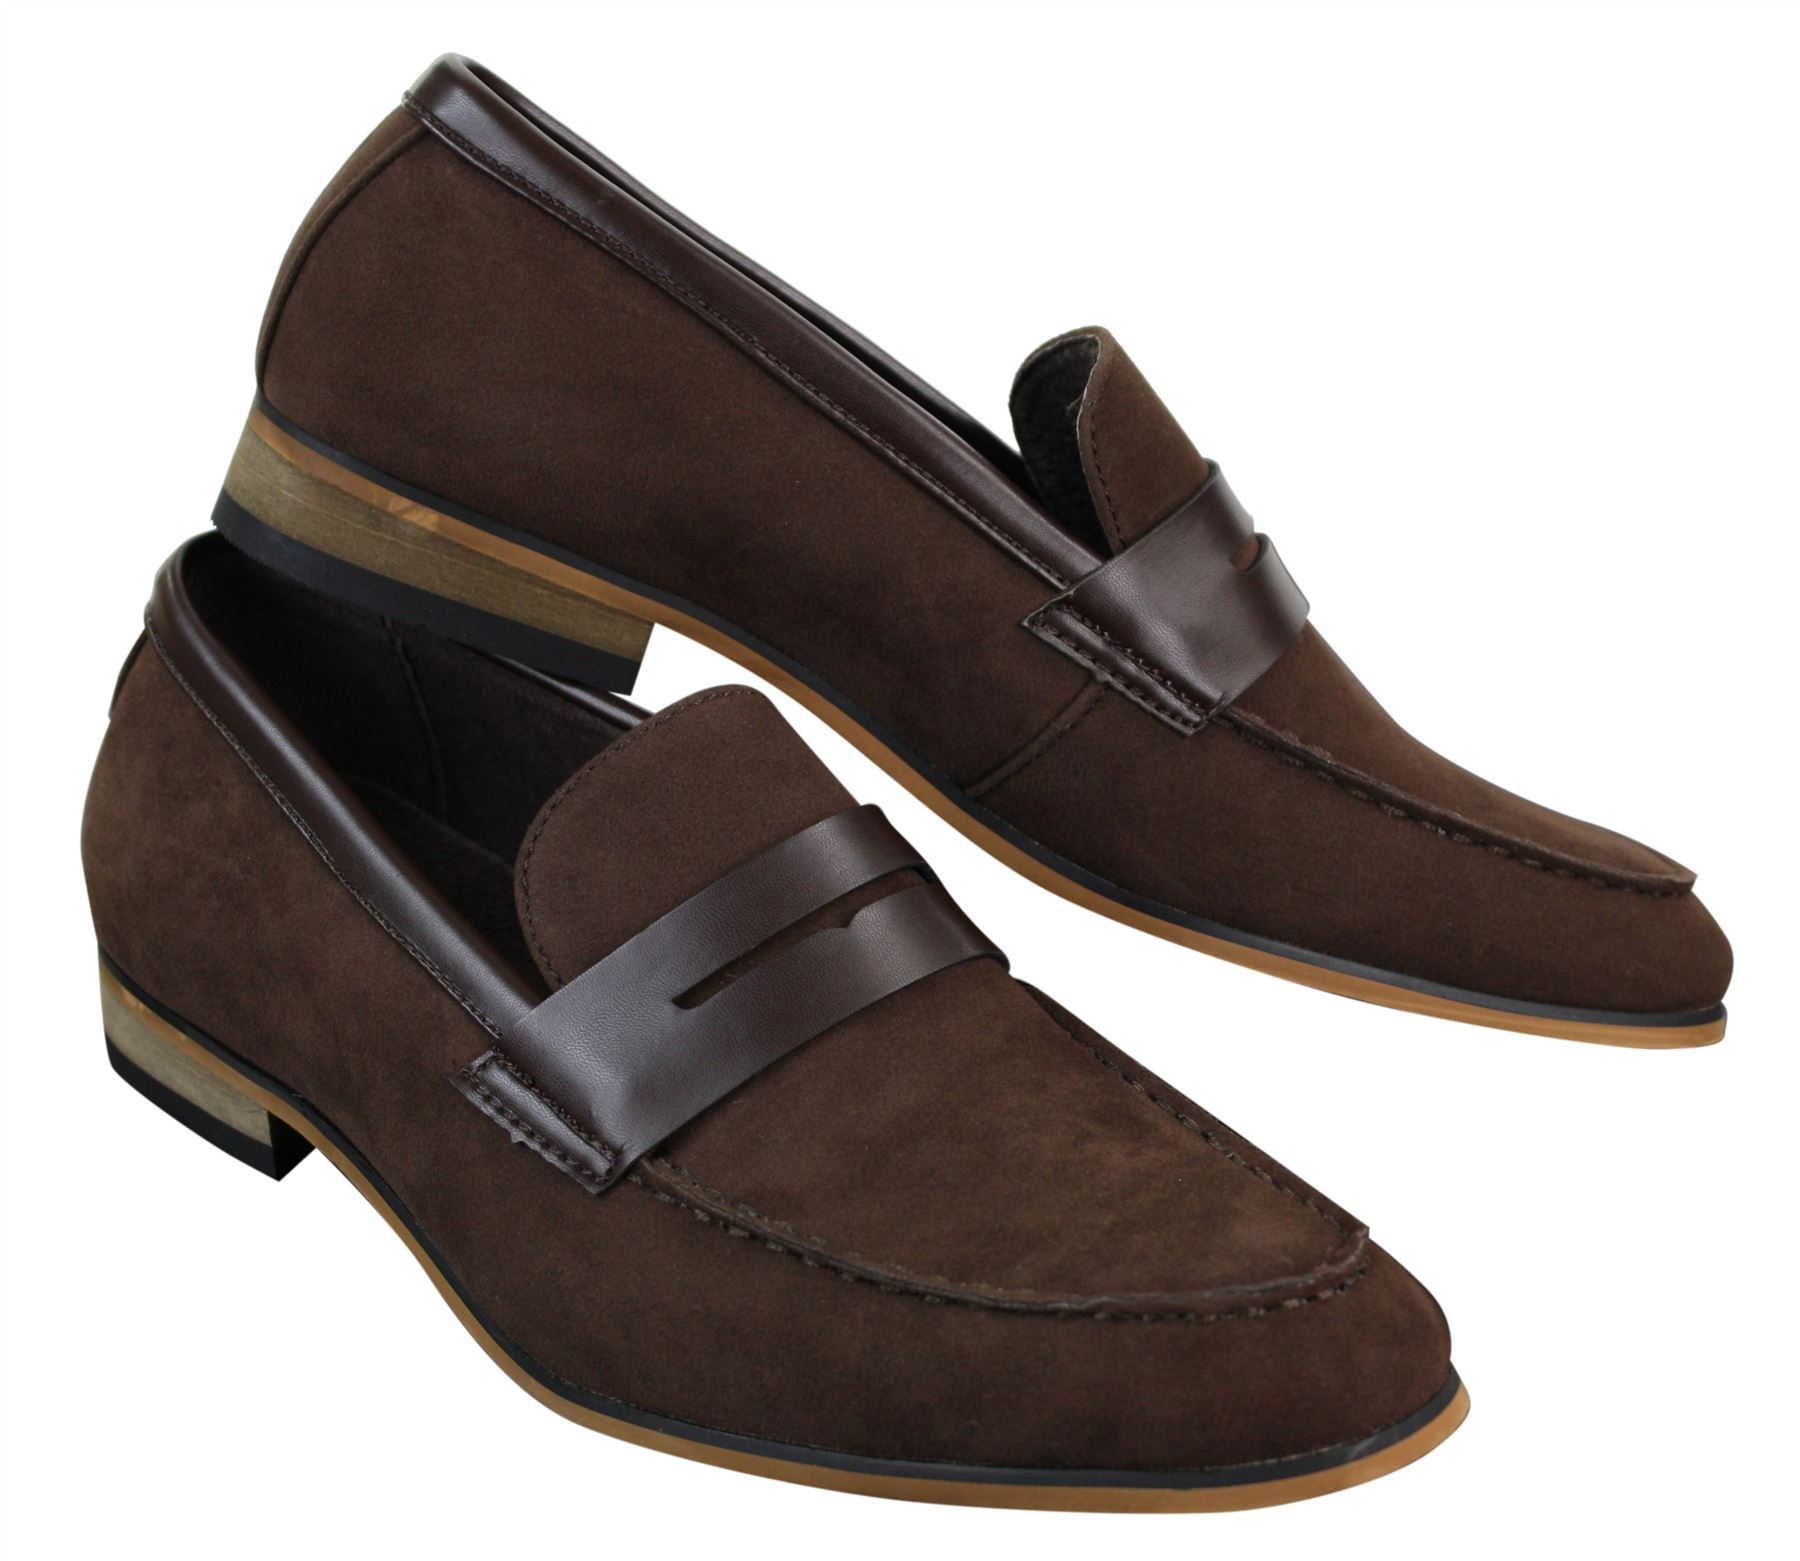 Mens Casual Ankle Shoes Loafers